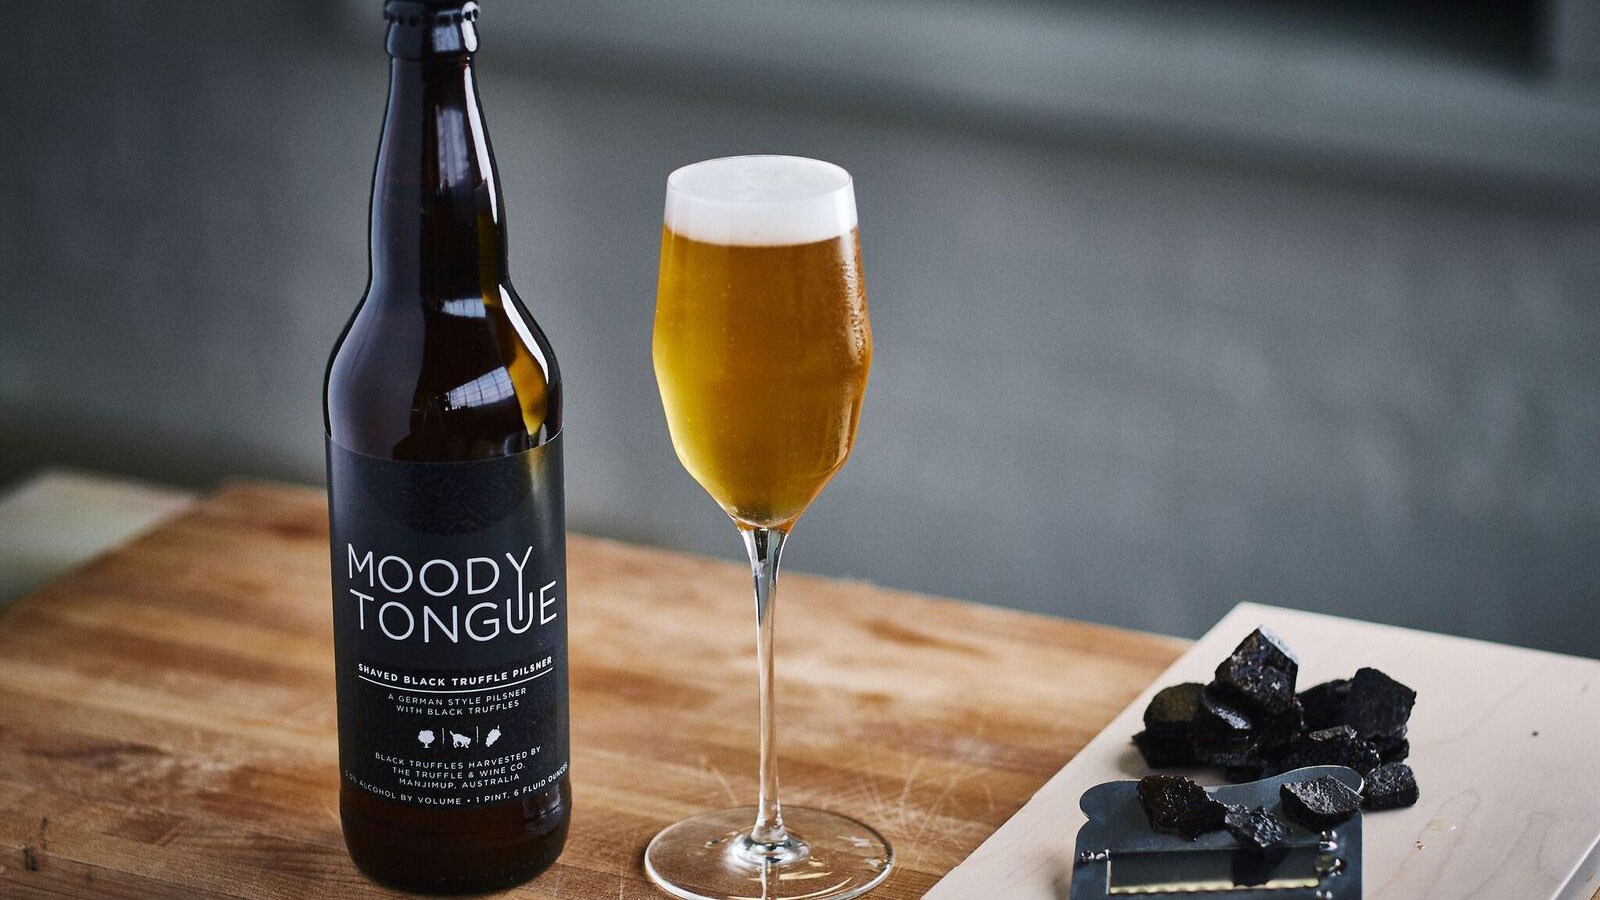 moody tongue truffle beer